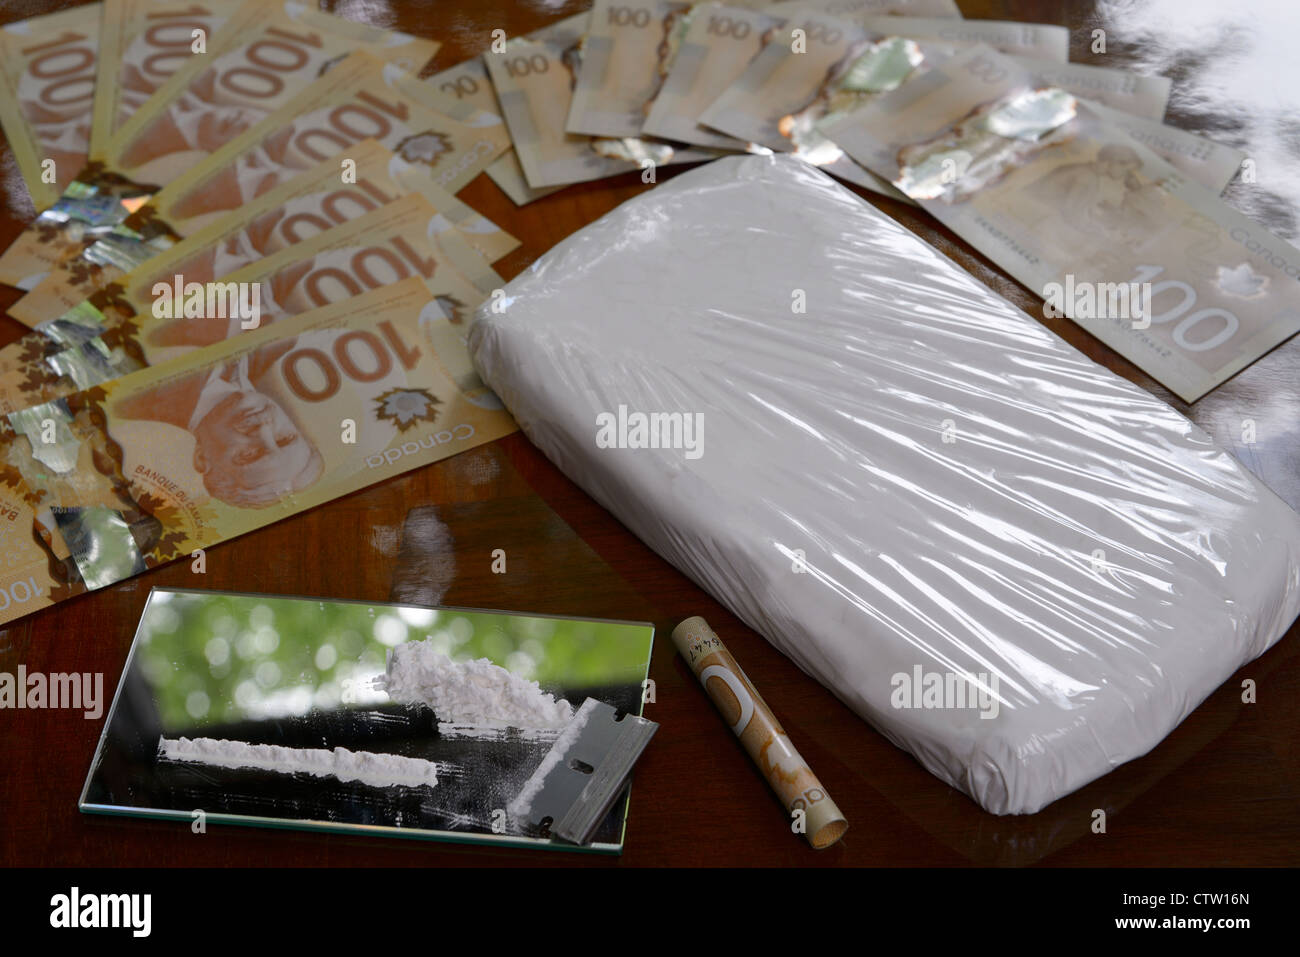 Fanned out Canadian 100 dollar bills with bag of cocaine and coke line with razor blade on mirror - Stock Image